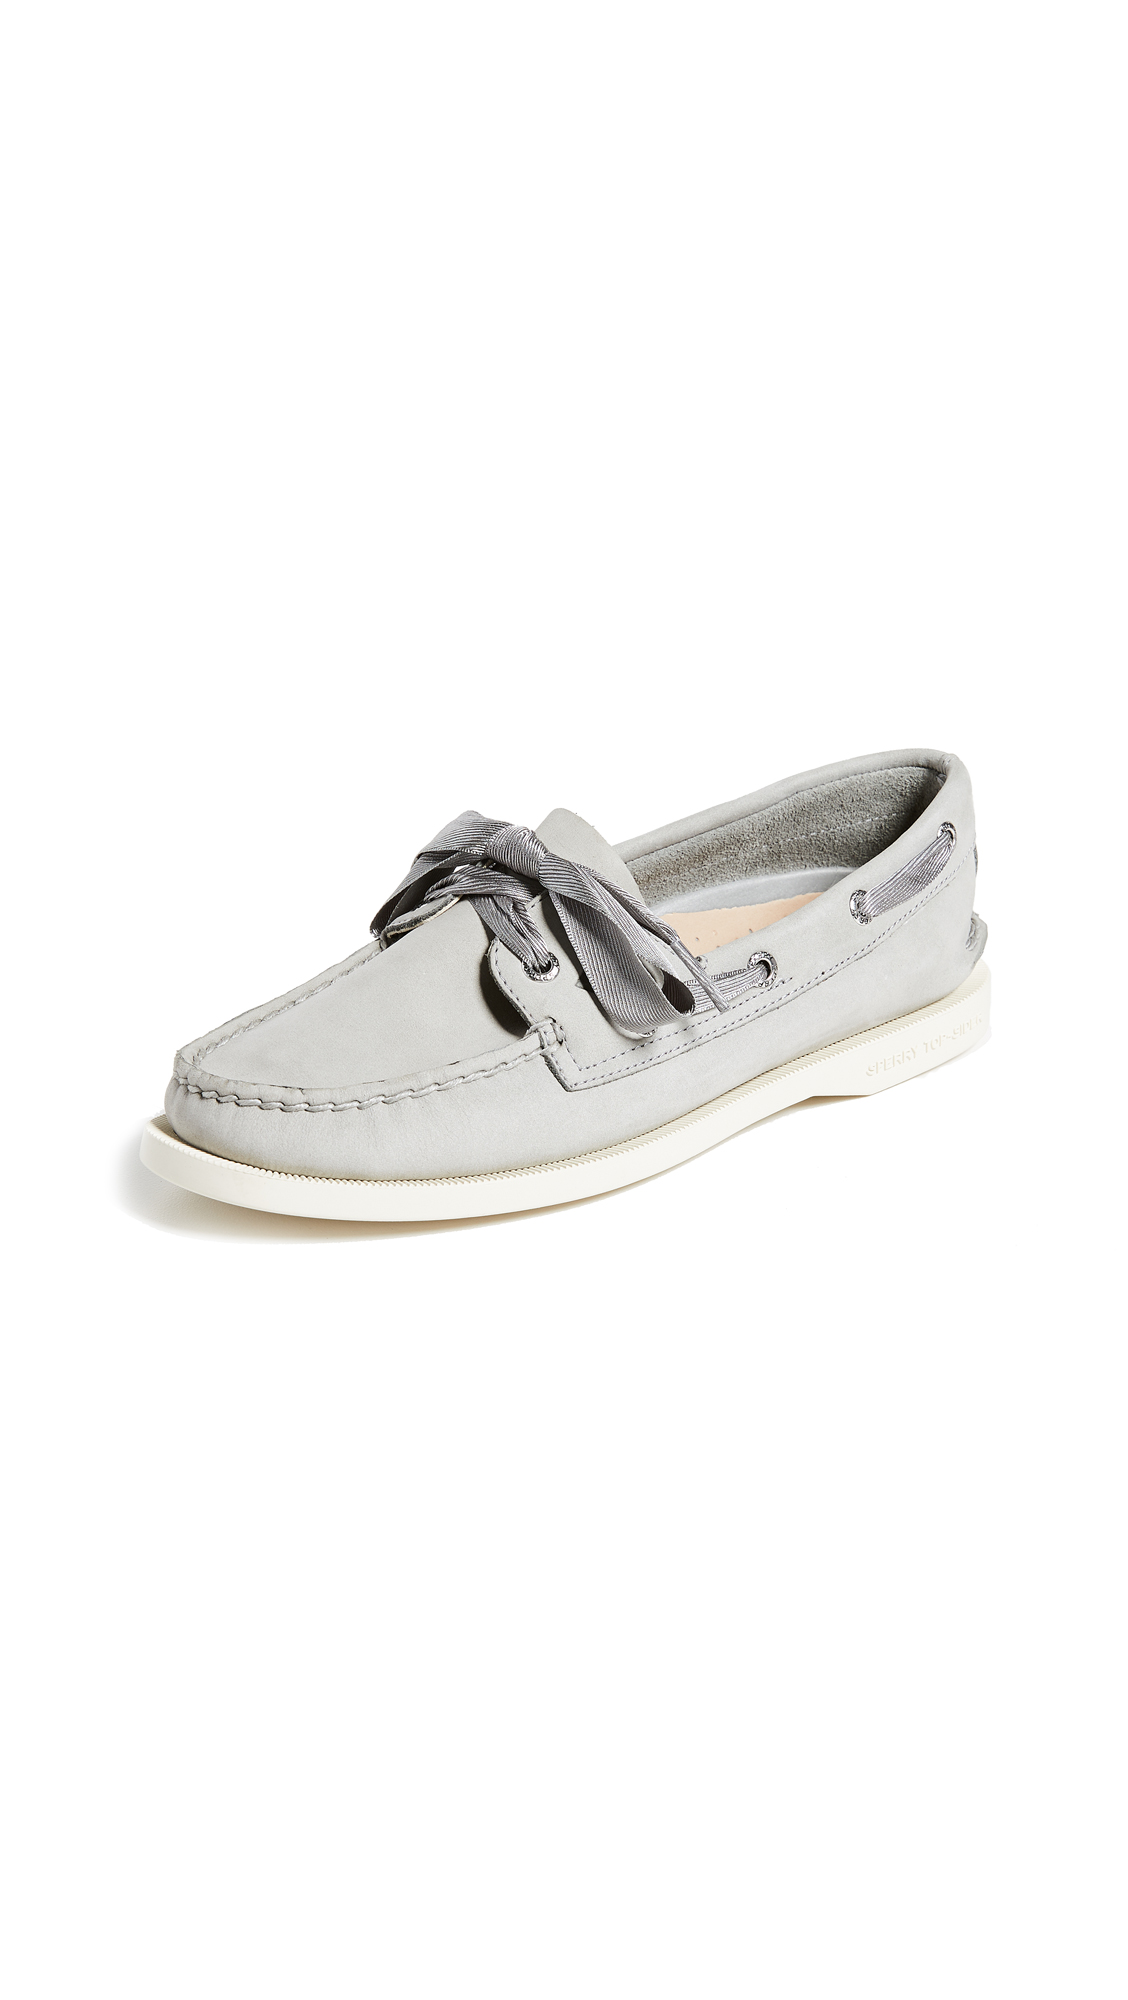 Sperry A/O Satin Lace Boat Shoes - Grey